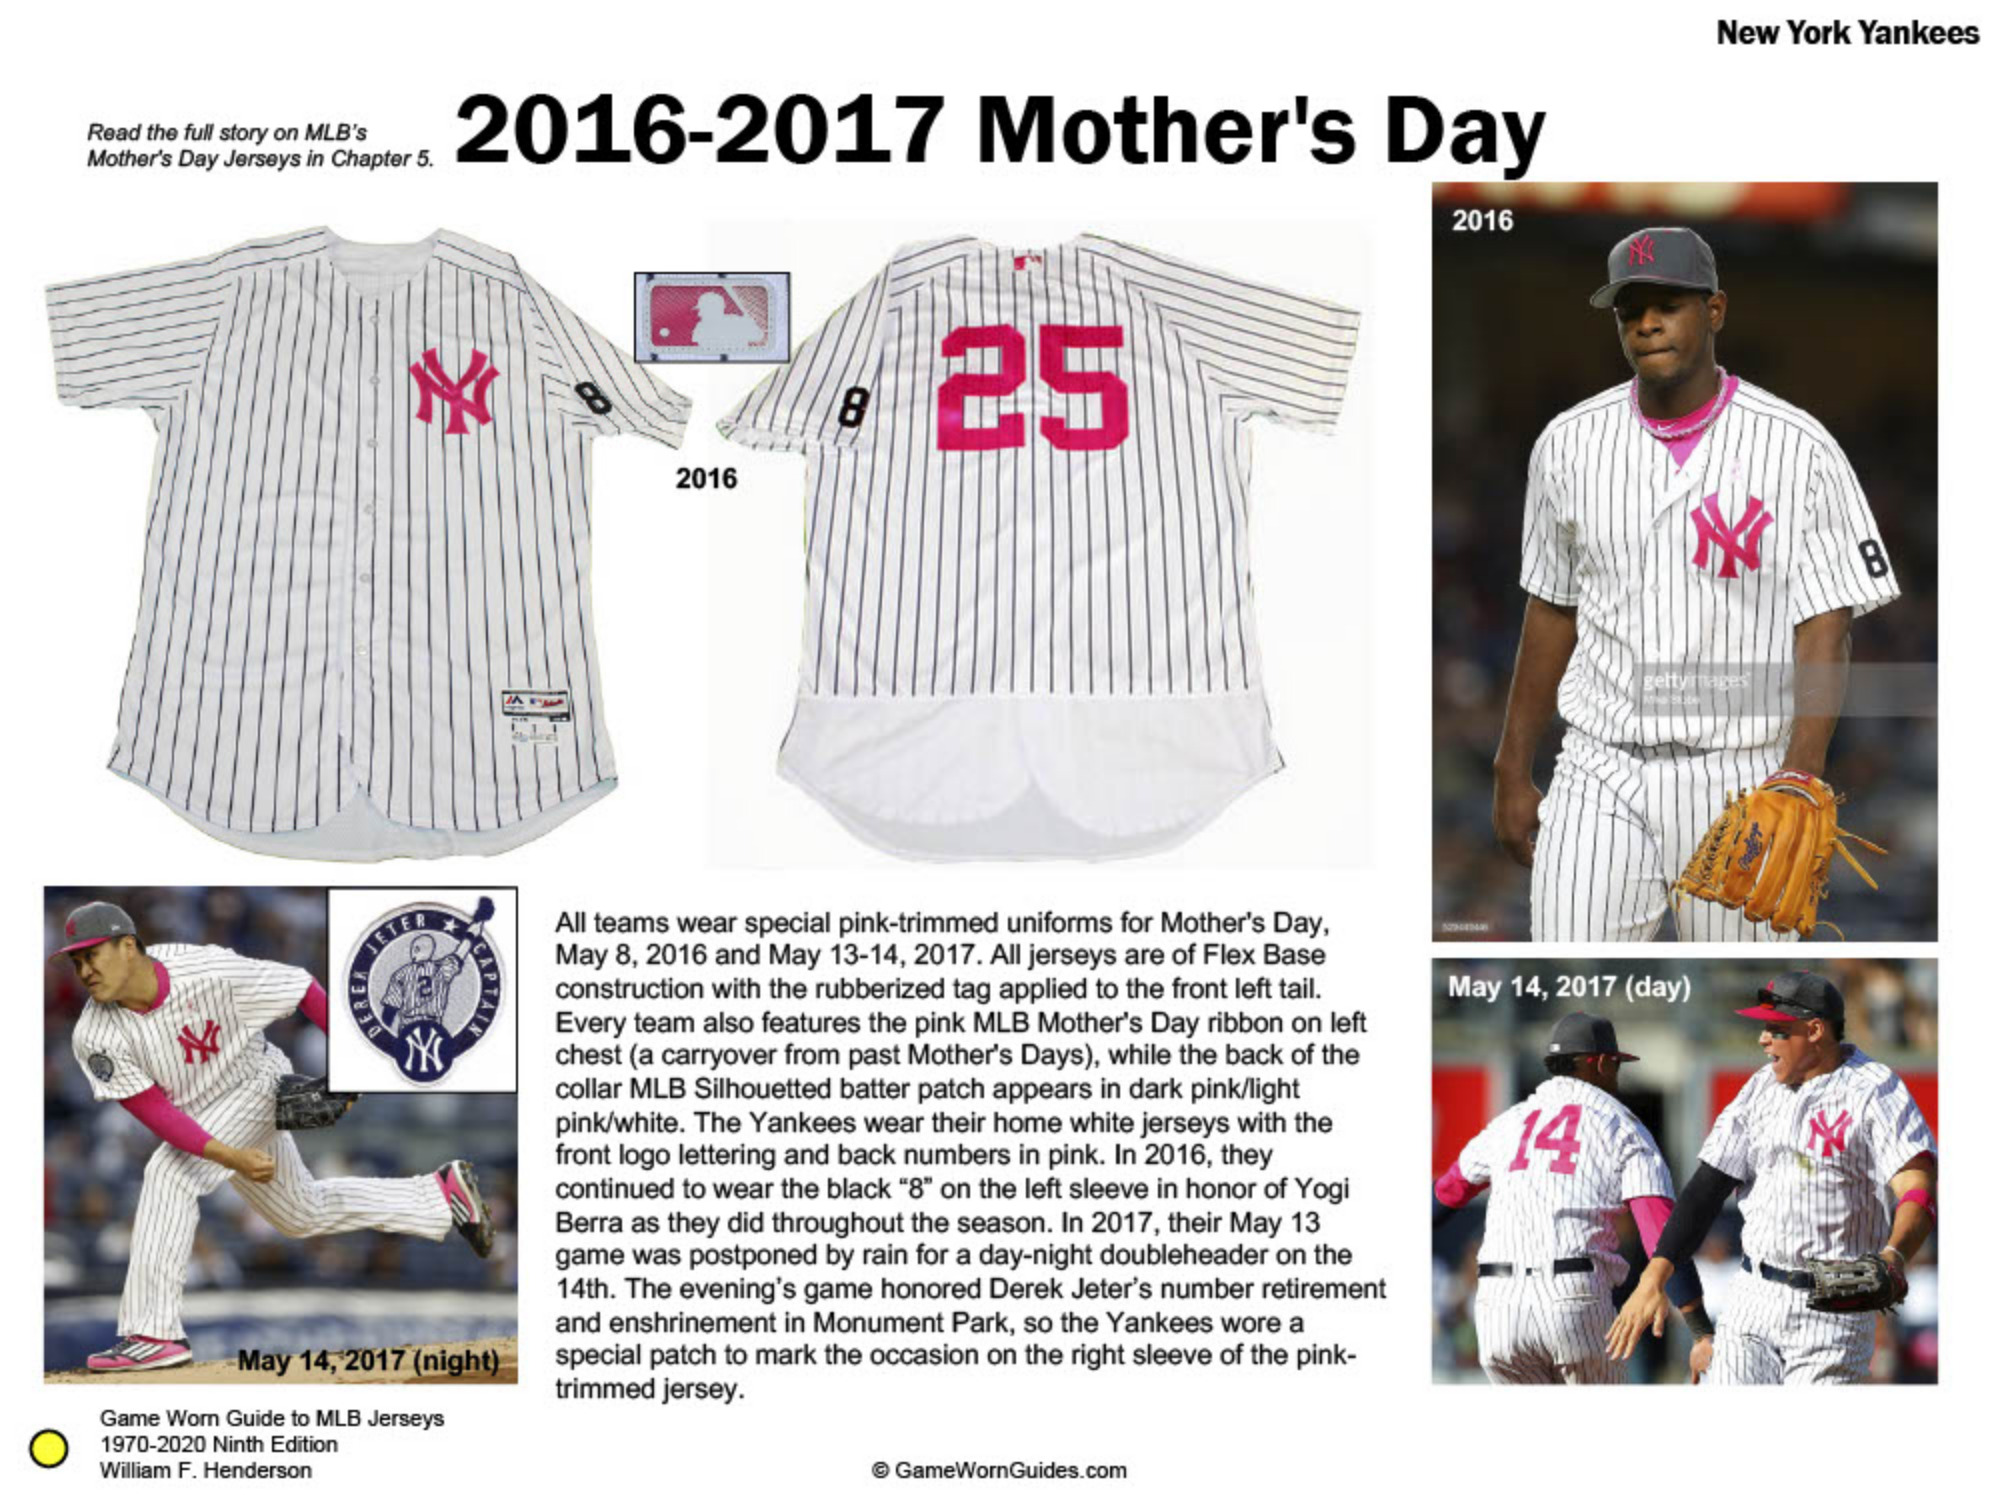 Game Worn Guide to New York Yankees Jerseys (1970-2020)